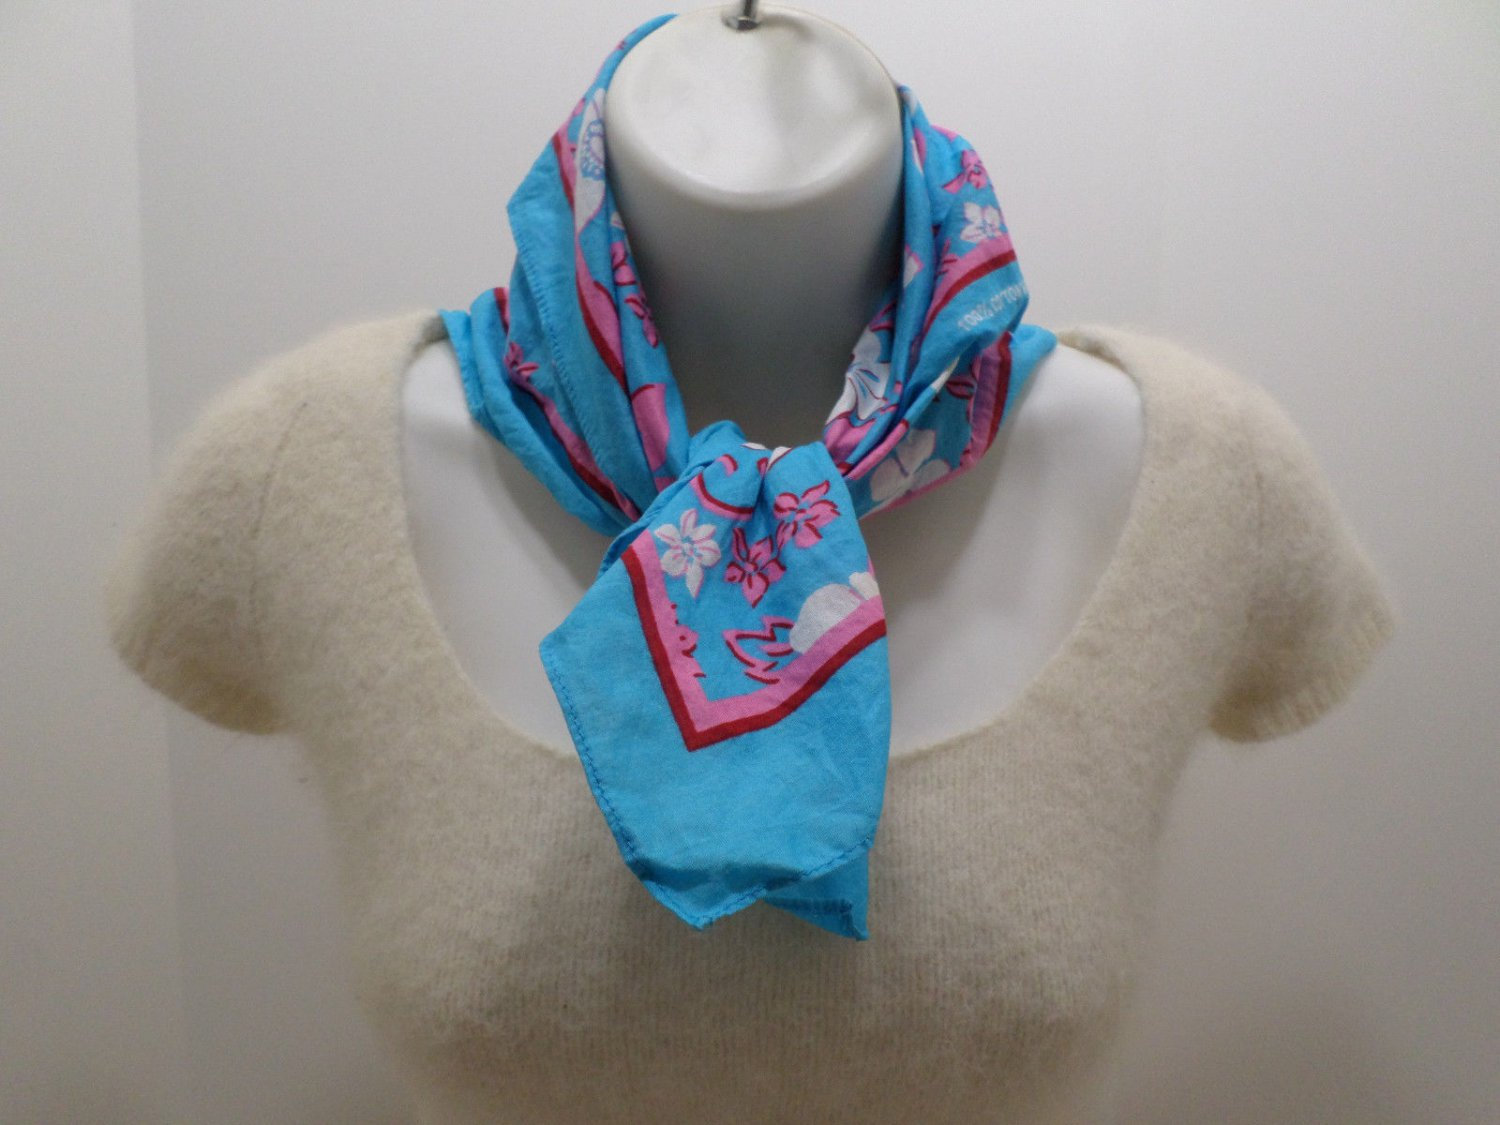 Vintage Scarf 100% Cotton #13960 Light Blue with Pink/White Flowers Design